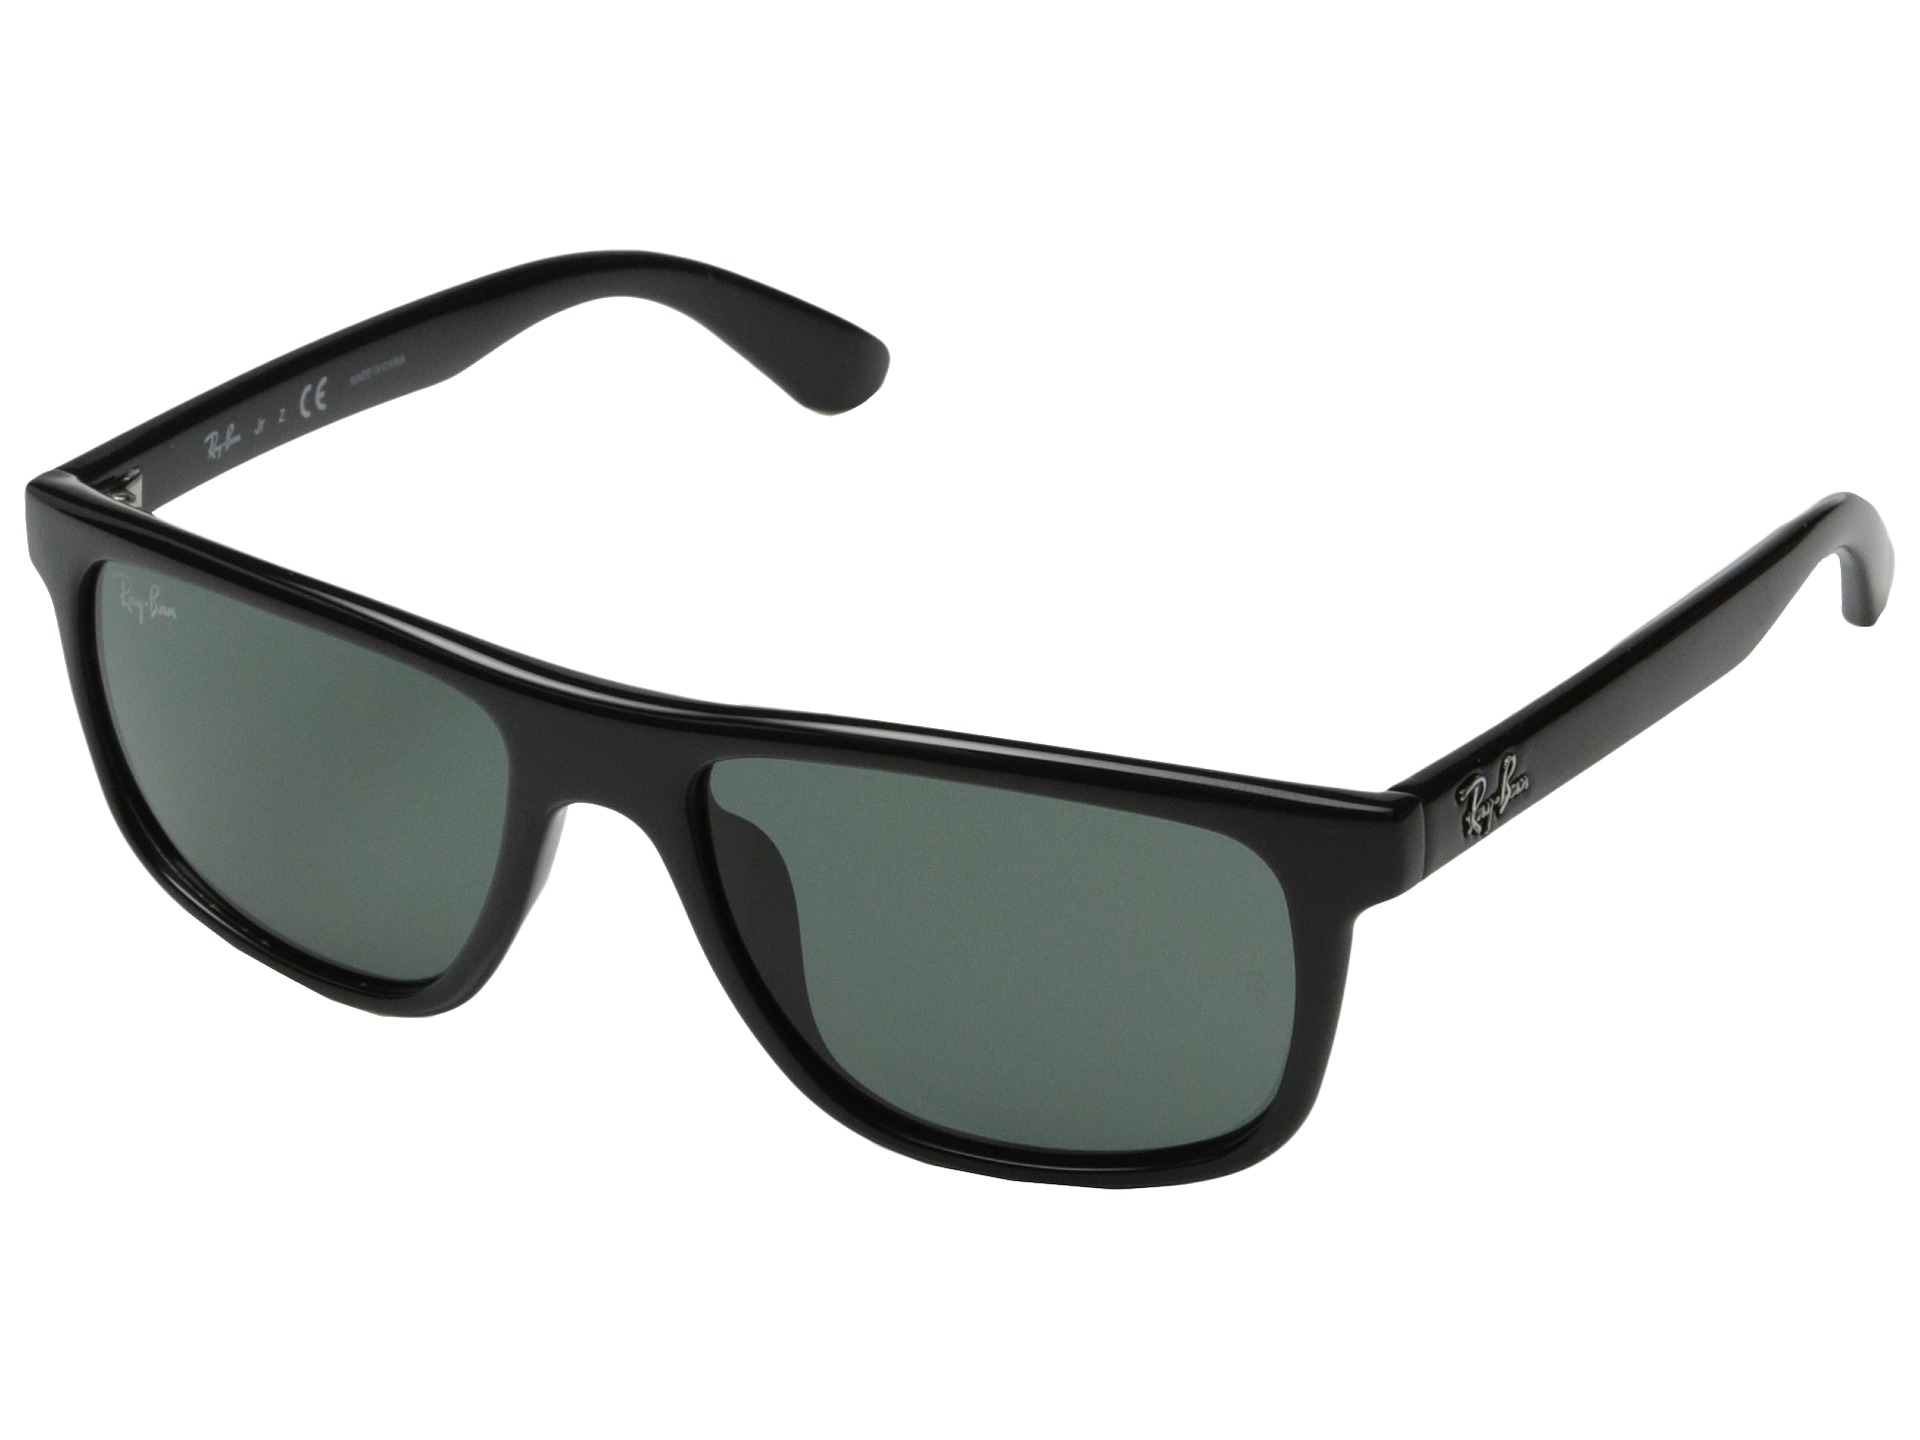 vip ray ban outlet review. Black Bedroom Furniture Sets. Home Design Ideas